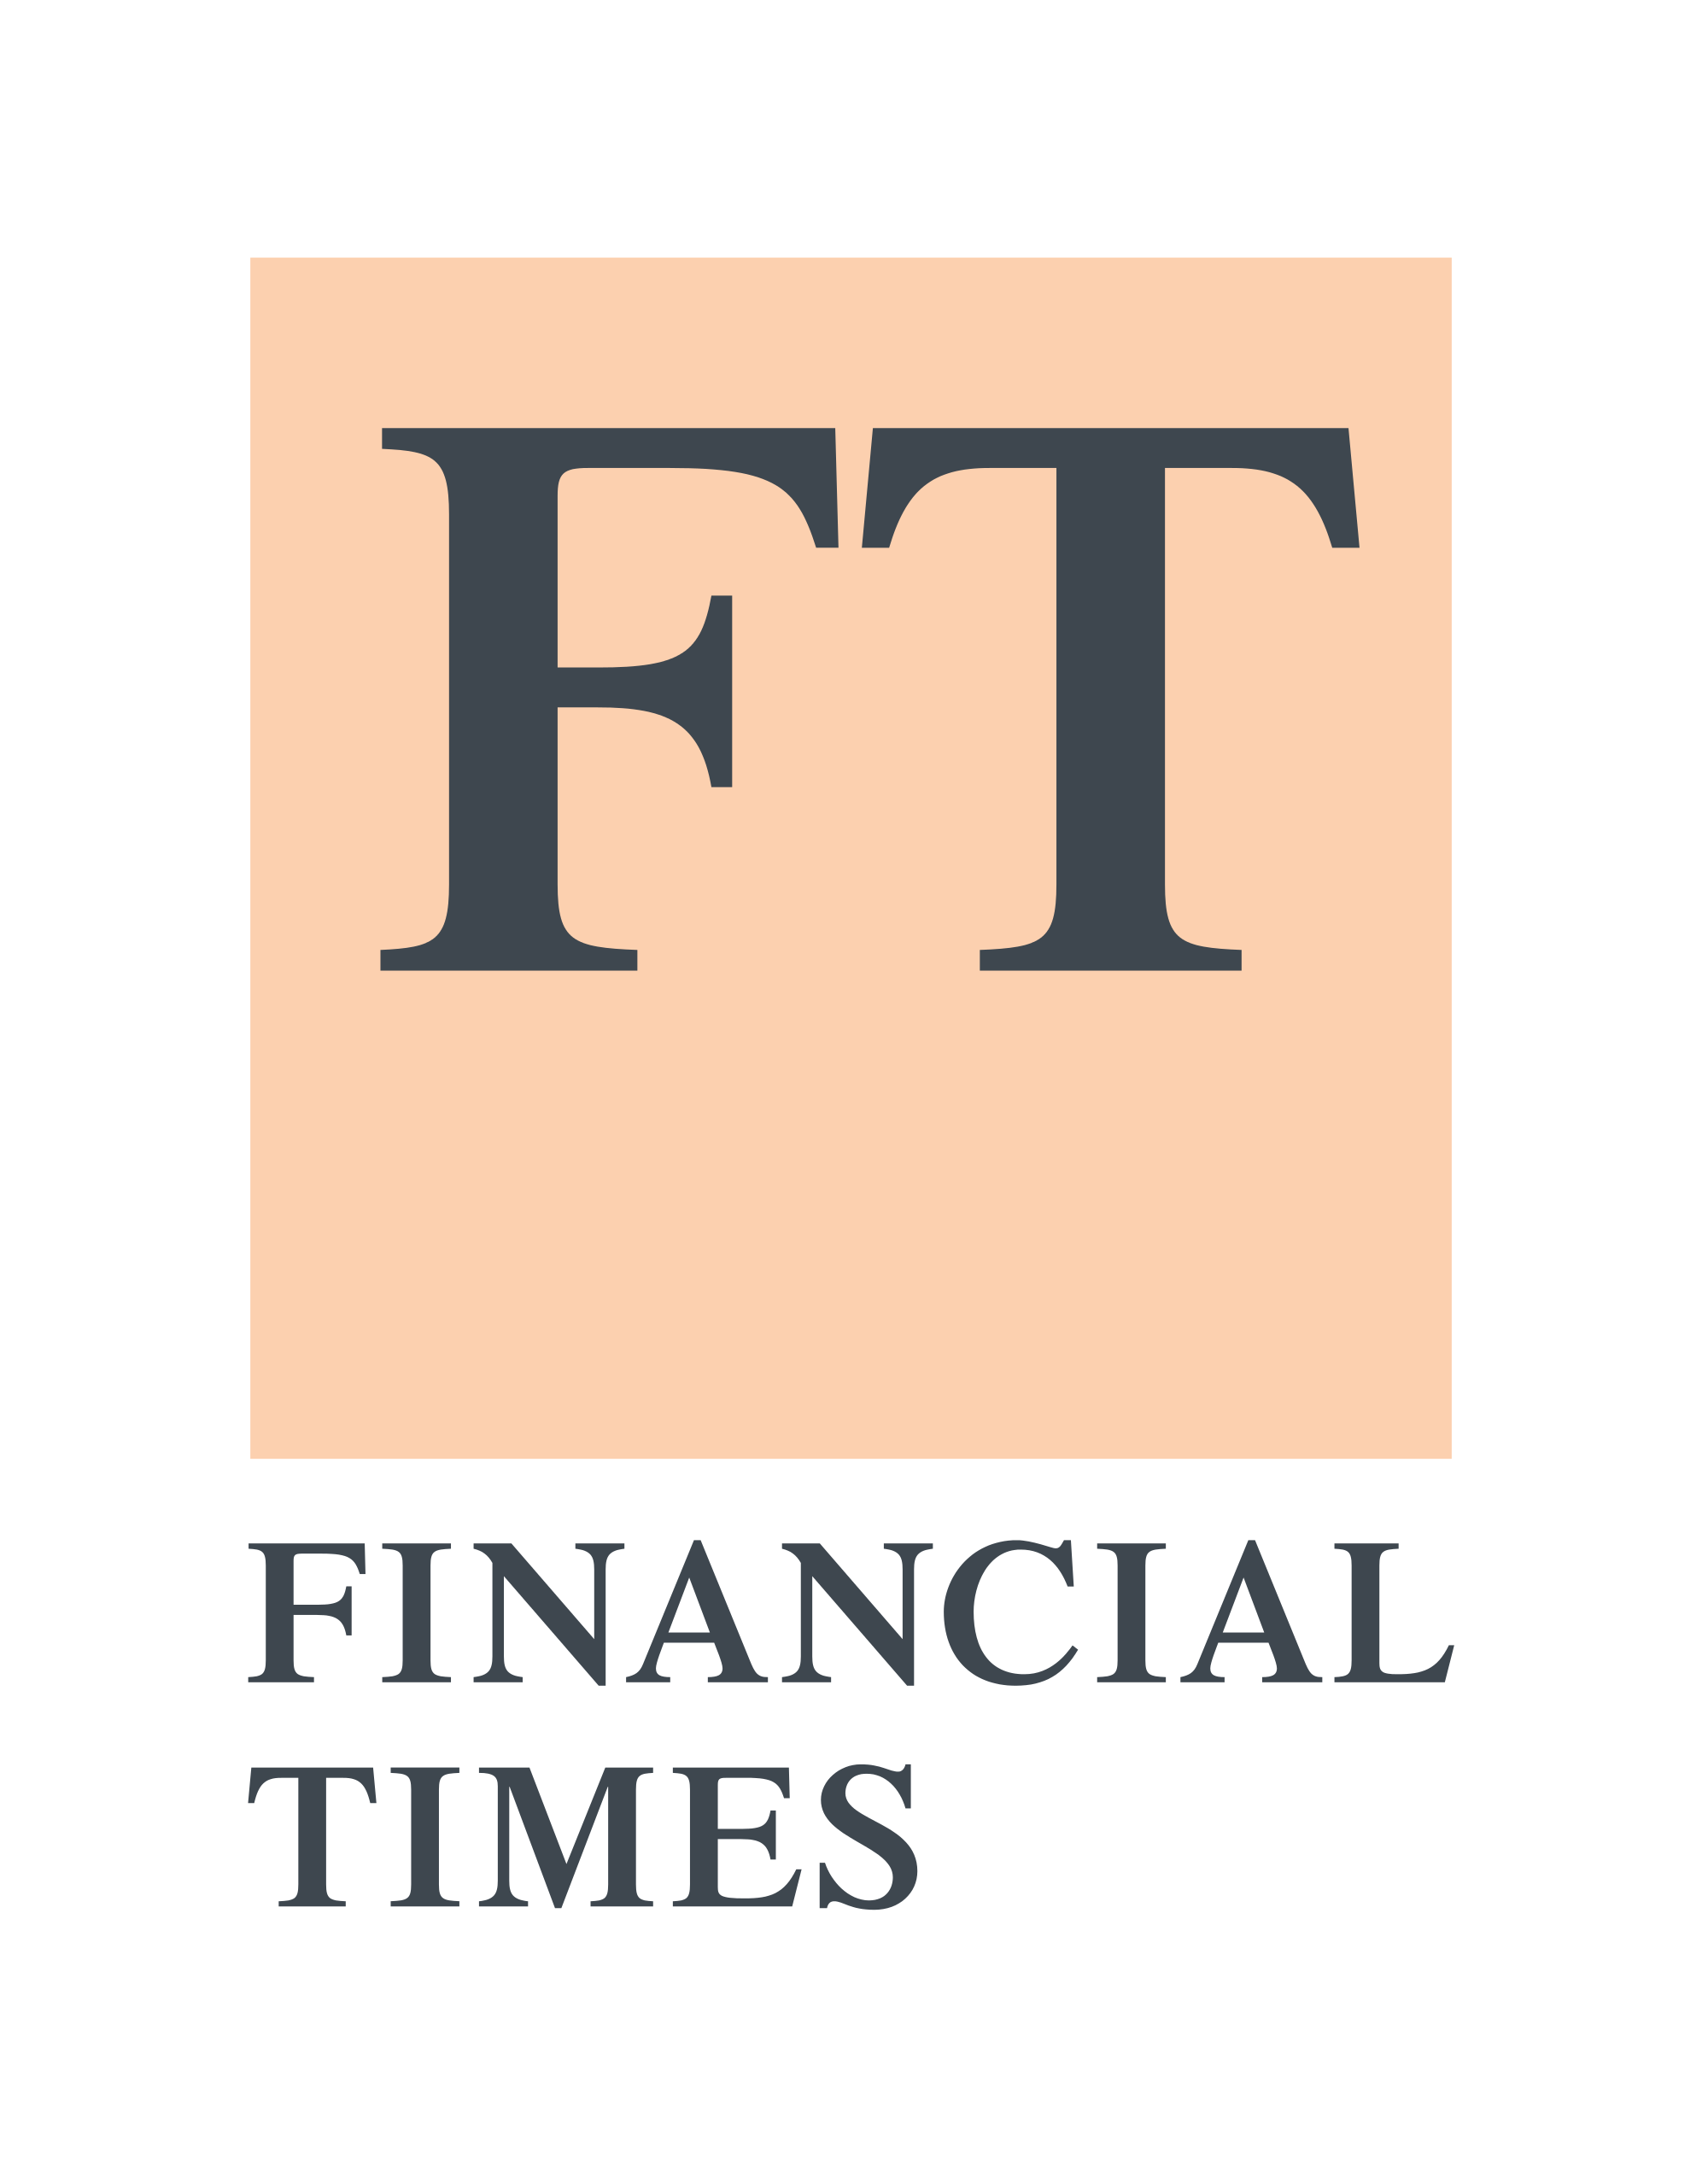 Financial_Times_corporate_logo.svg